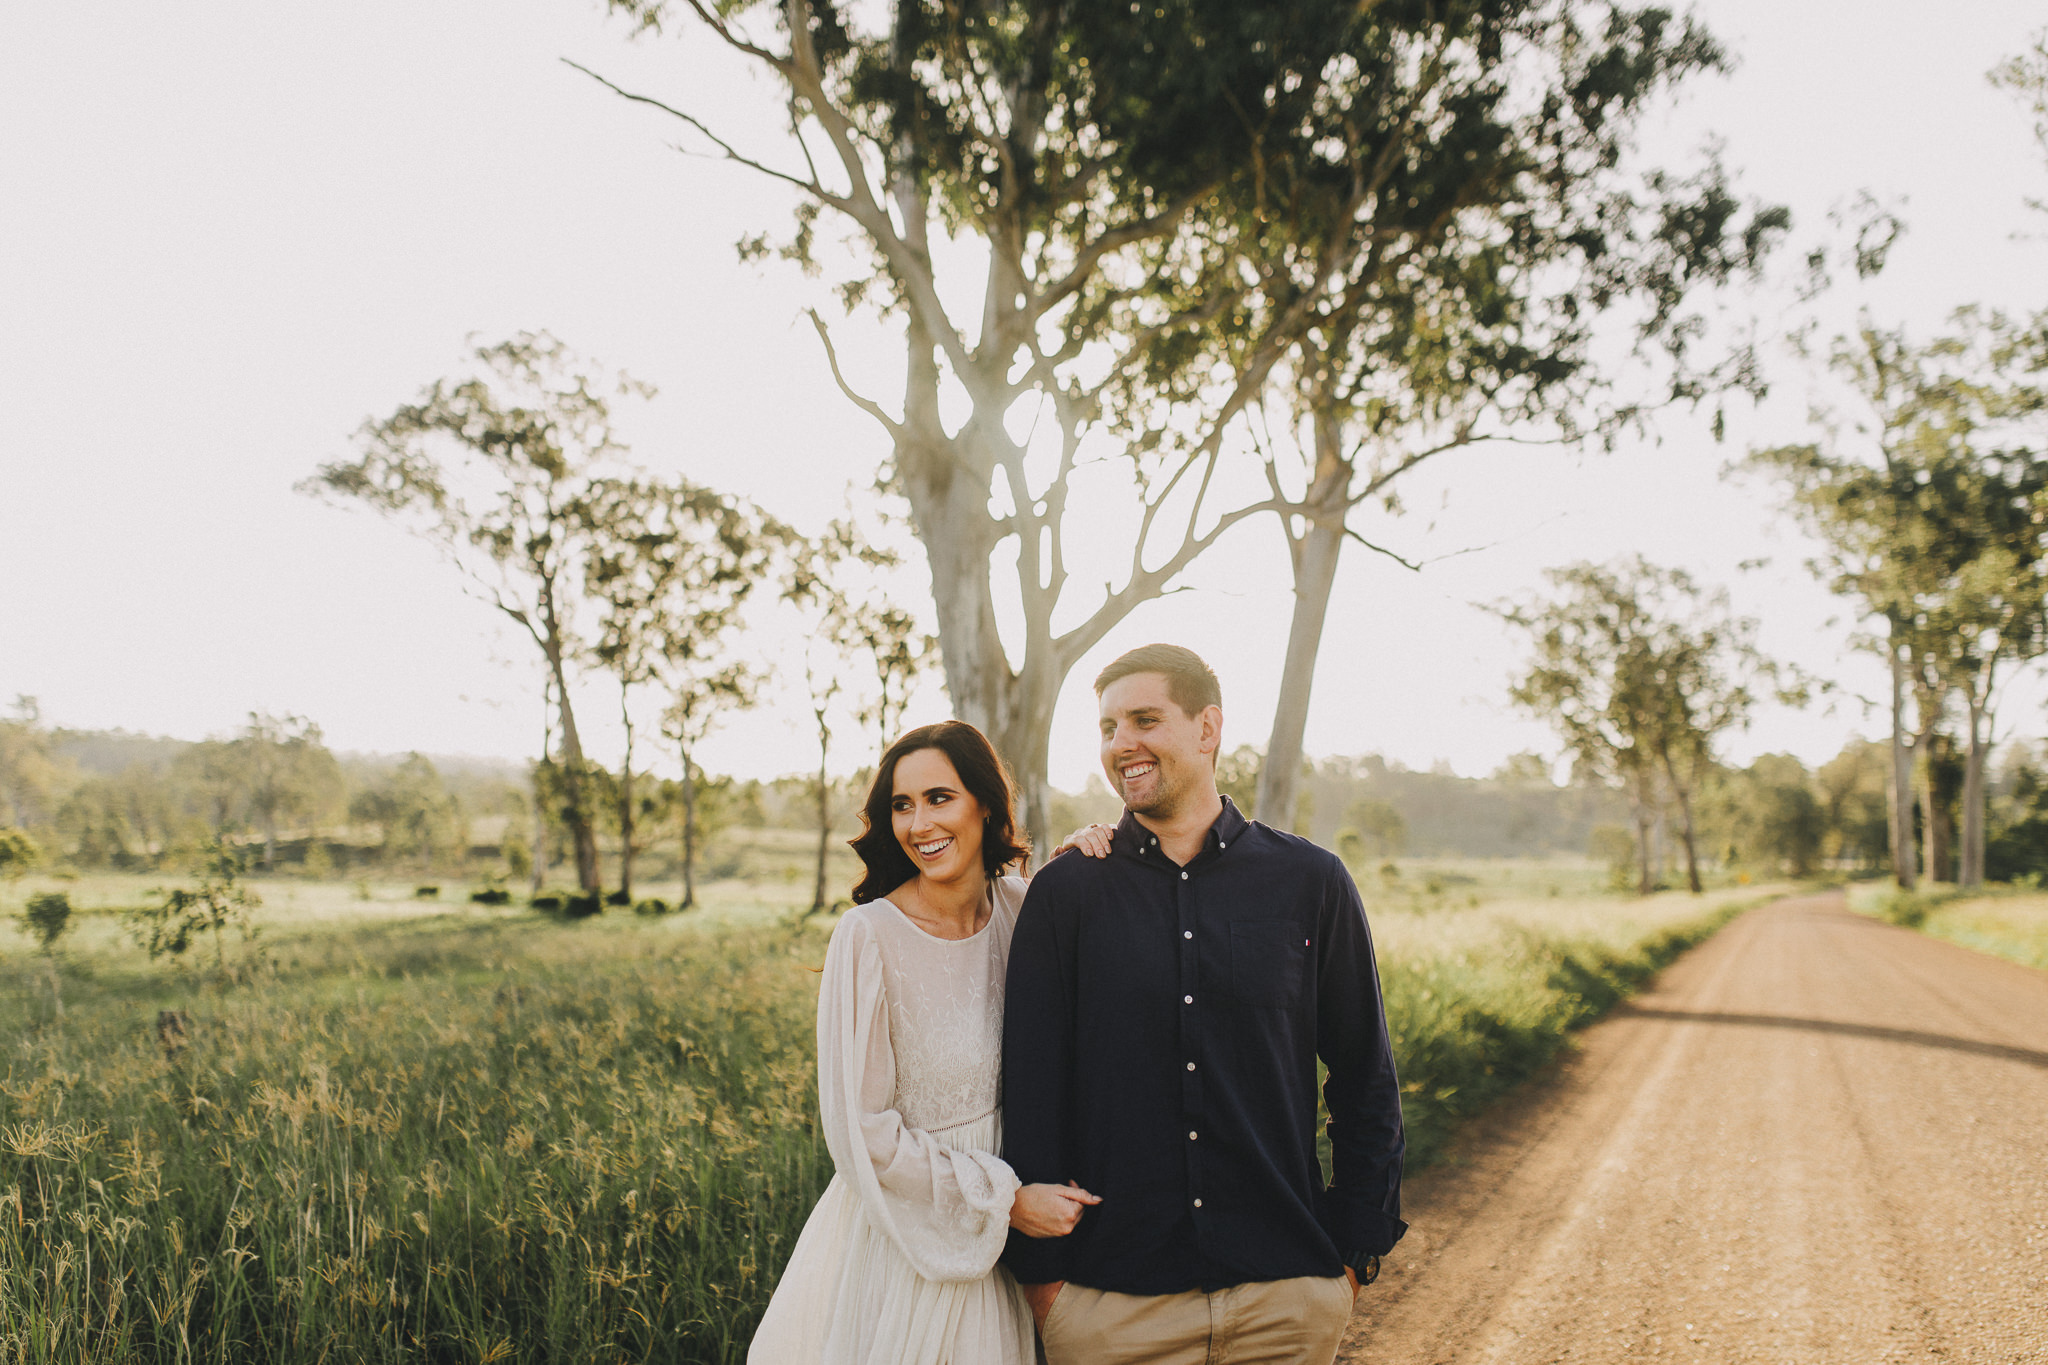 Ange&Jackson-Engagement-resized-19 - Family Photoshoots Brisbane